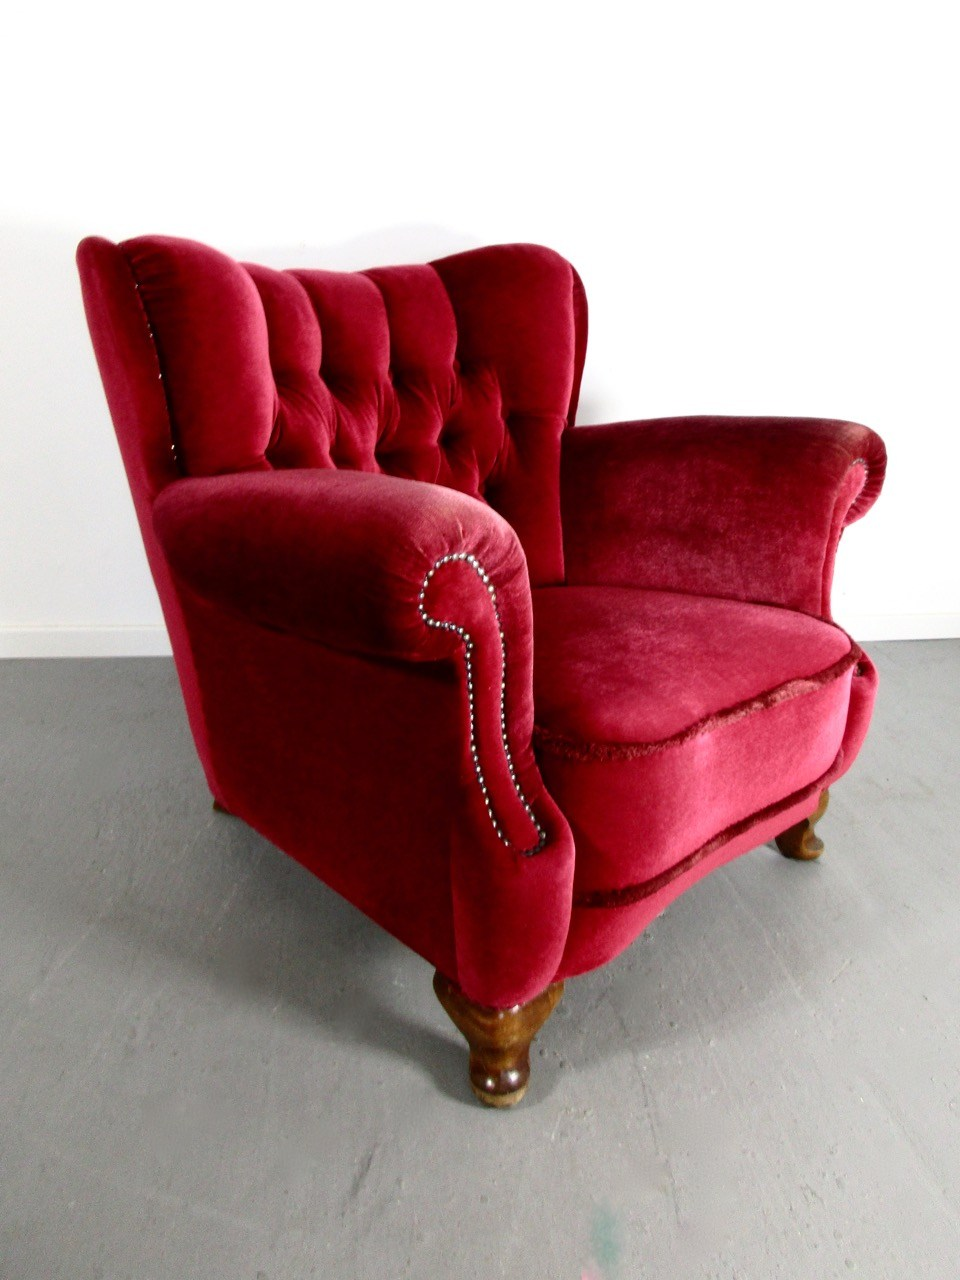 Sold roter samt sessel 1 2 retro salon cologne for Roter sessel